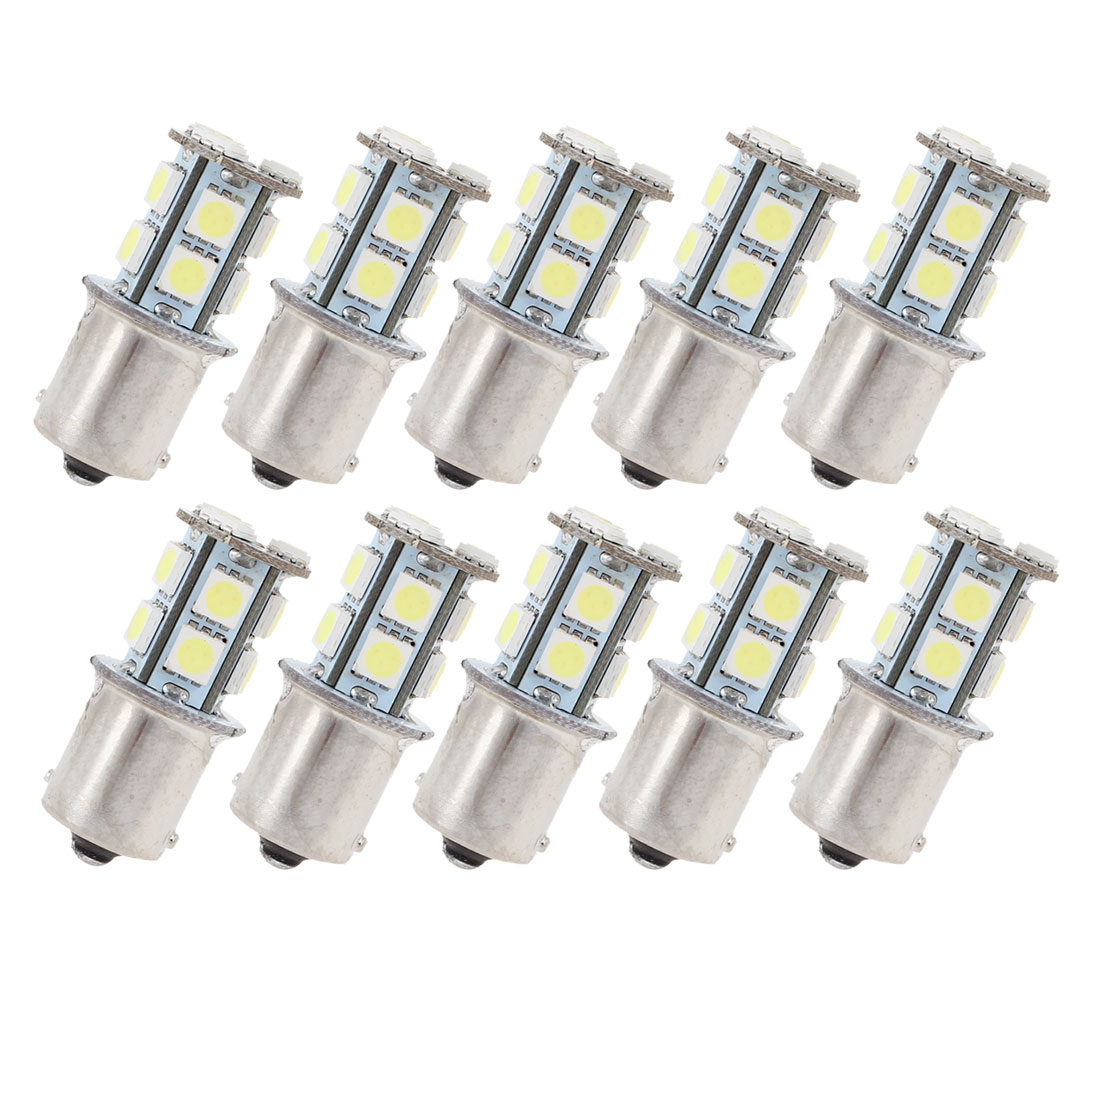 10 Pcs White 13 LED 1156 BA15S 5050 SMD Car Indicator Backup Tail Turn Light 5008